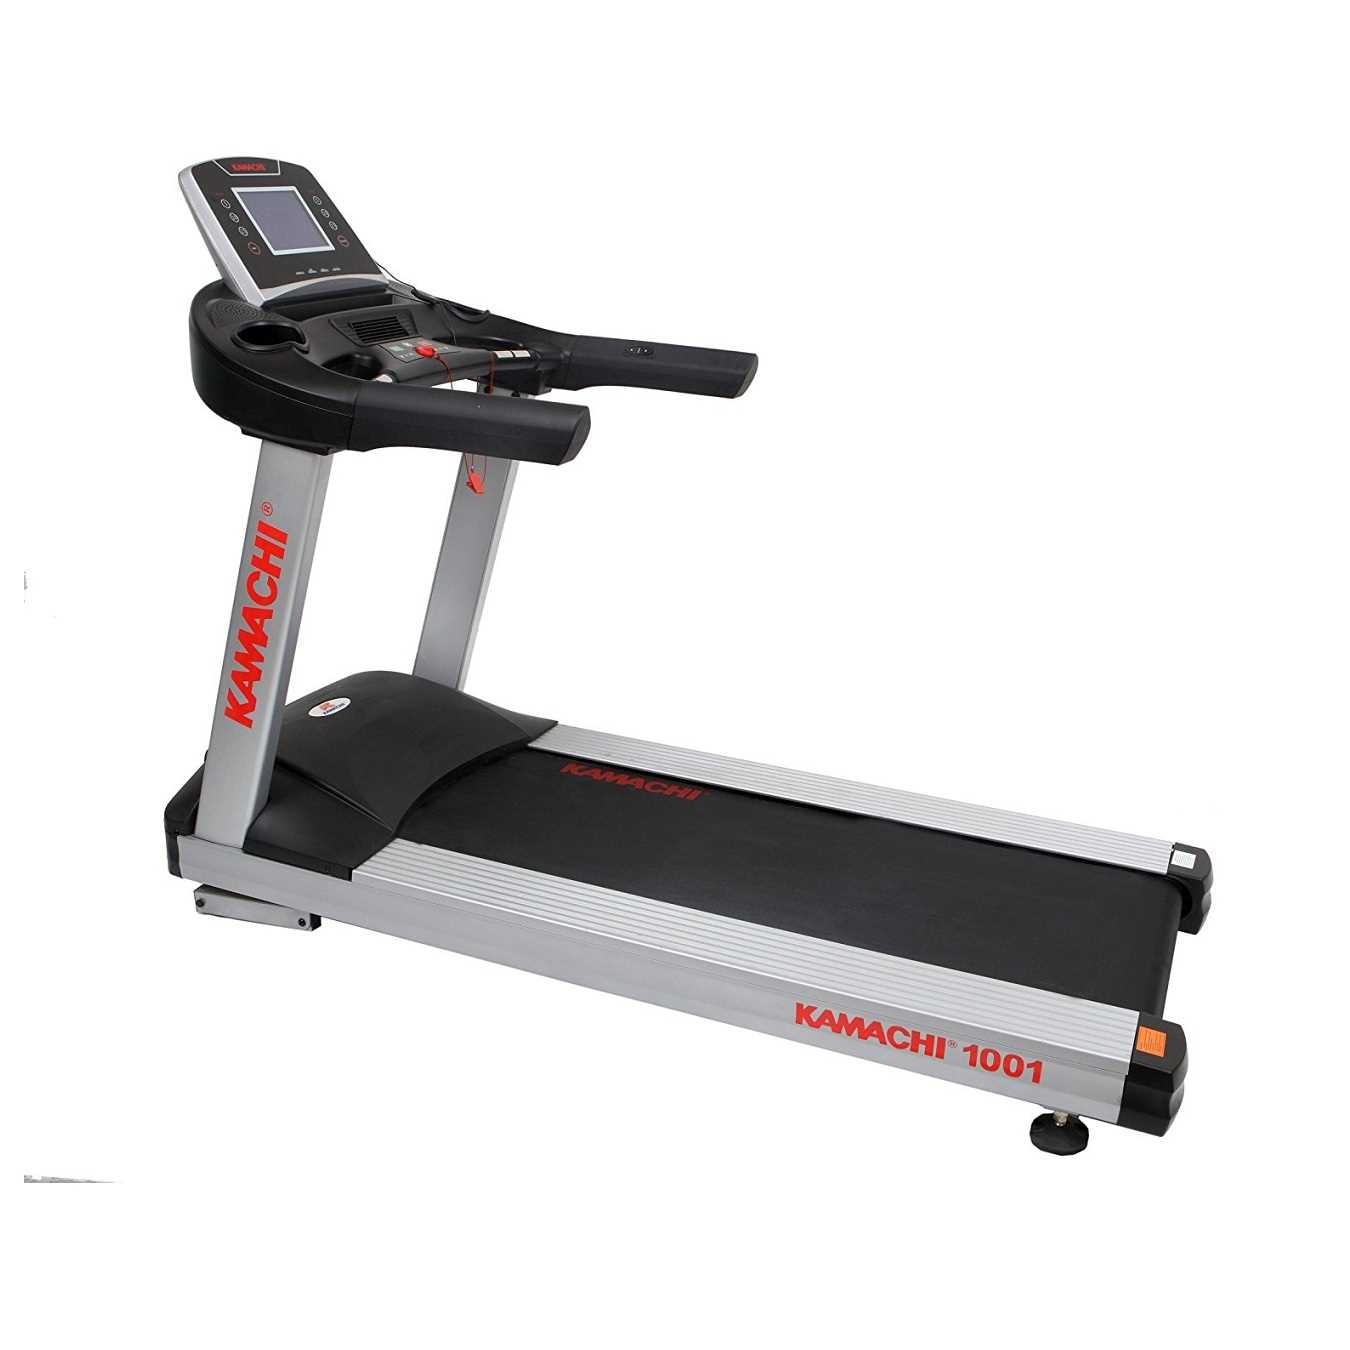 Kamachi 1001 Motorized Treadmill